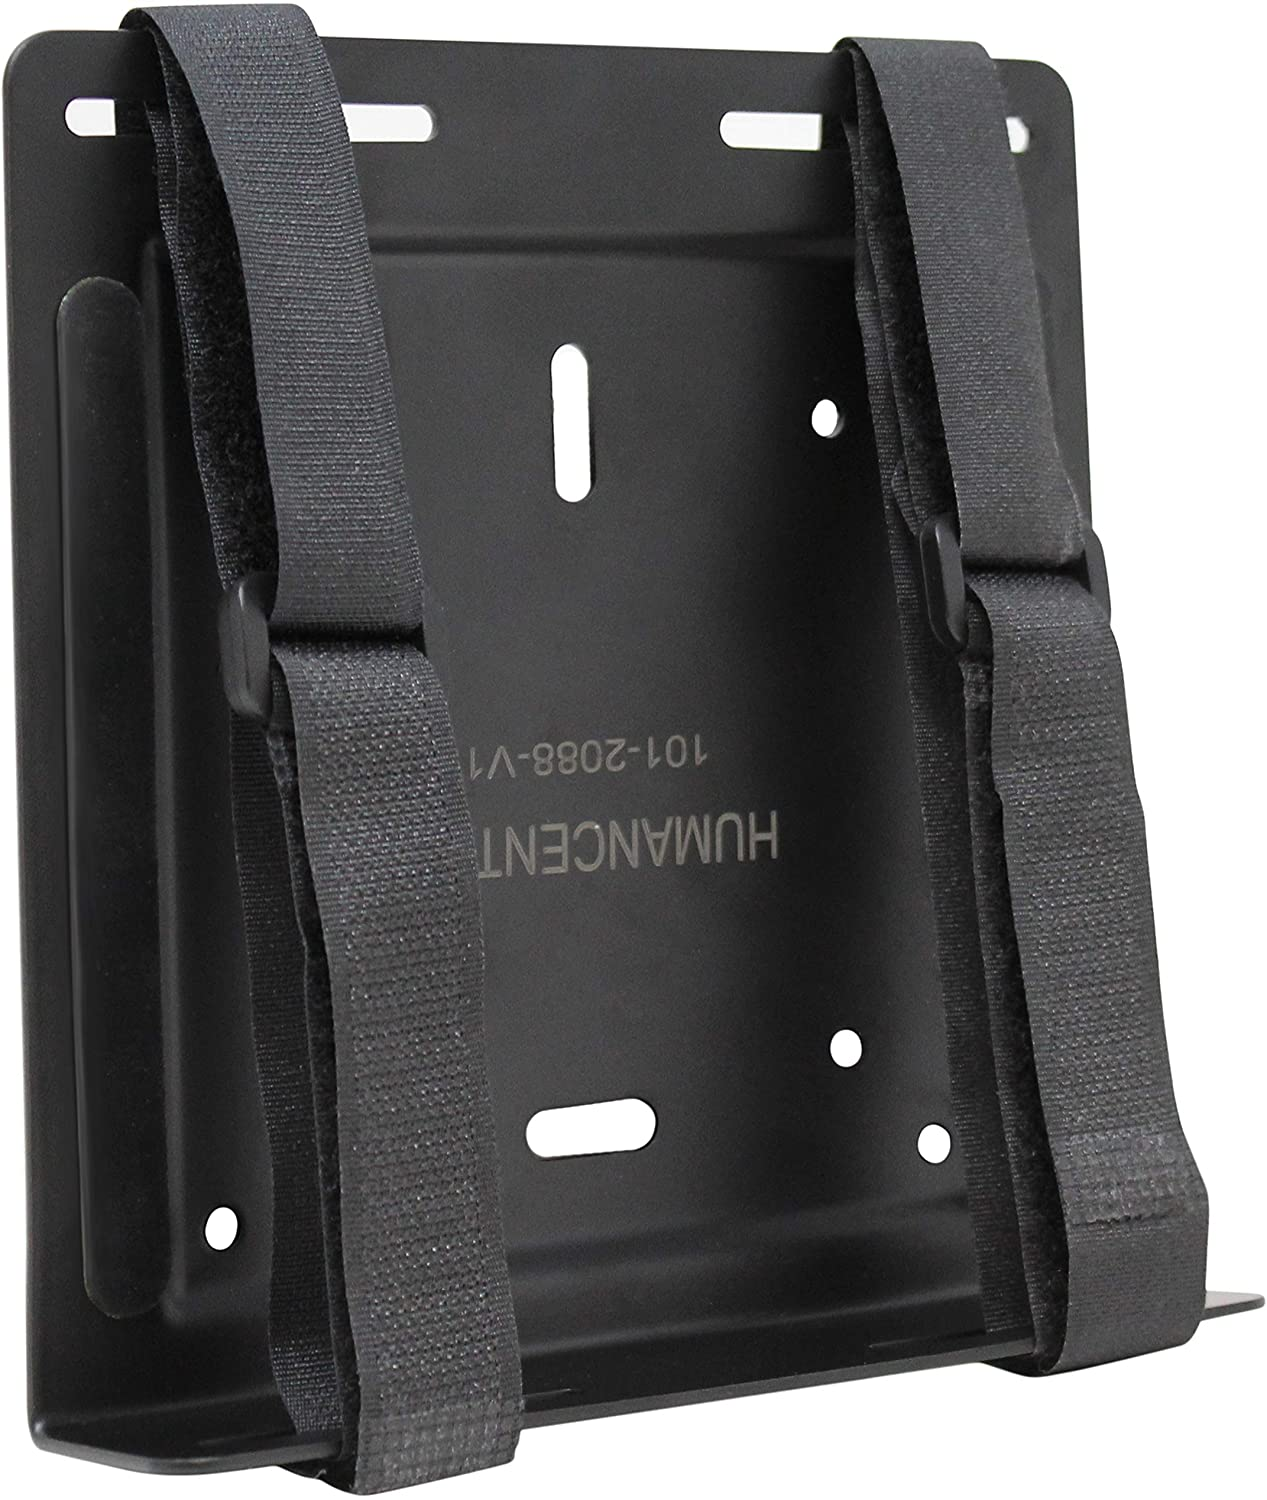 HumanCentric Universal Wall and VESA Mount | Adjustable Strap Mount for Computers, UPS Units, Cable Boxes, Modems, and Other Electronic Devices | Mounts on The Wall or Back of a Computer Monitor